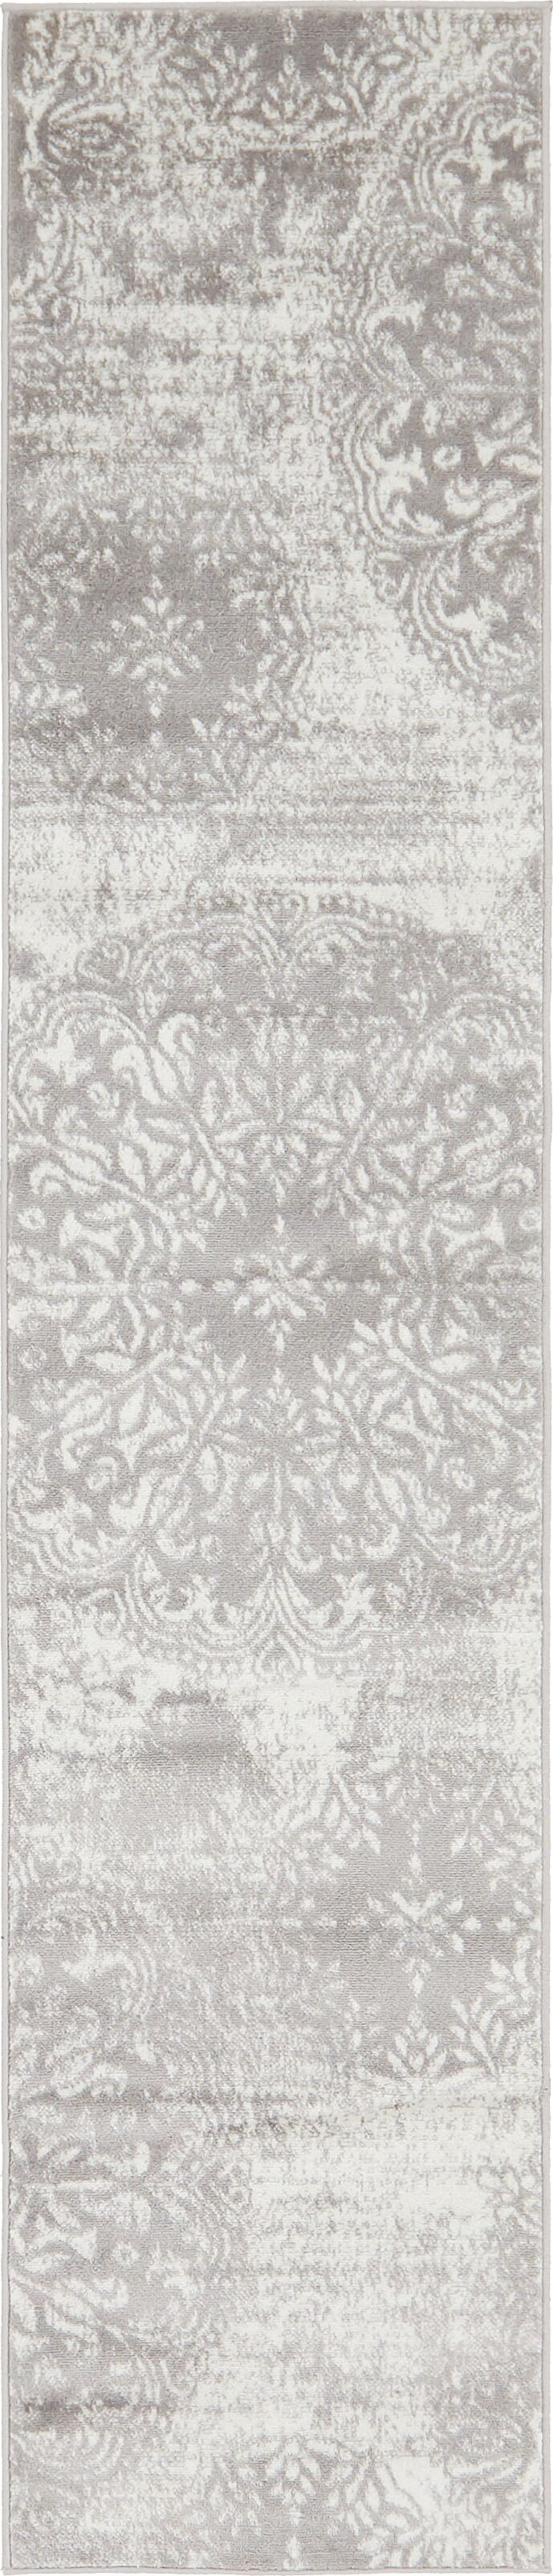 Brandt Light Gray Area Rug Rug Size: Runner 3'3